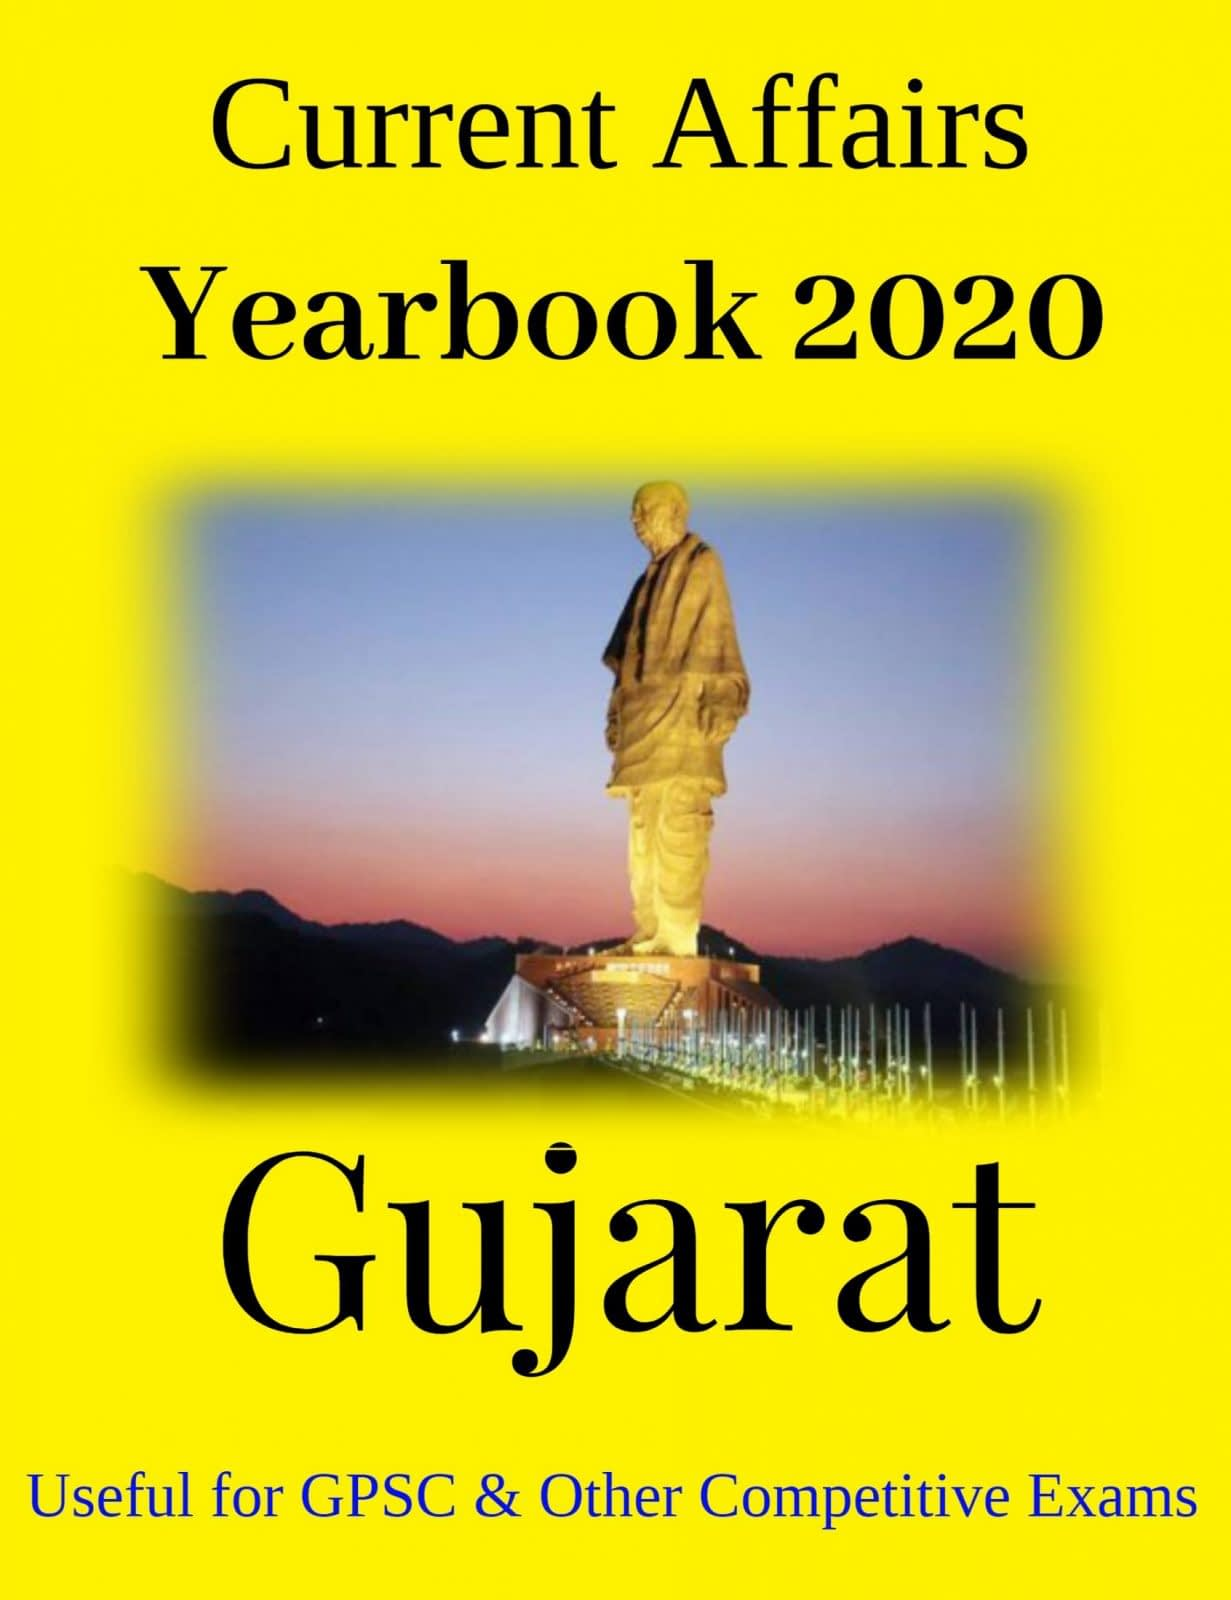 Gujarat Current Affairs Yearbook 2020